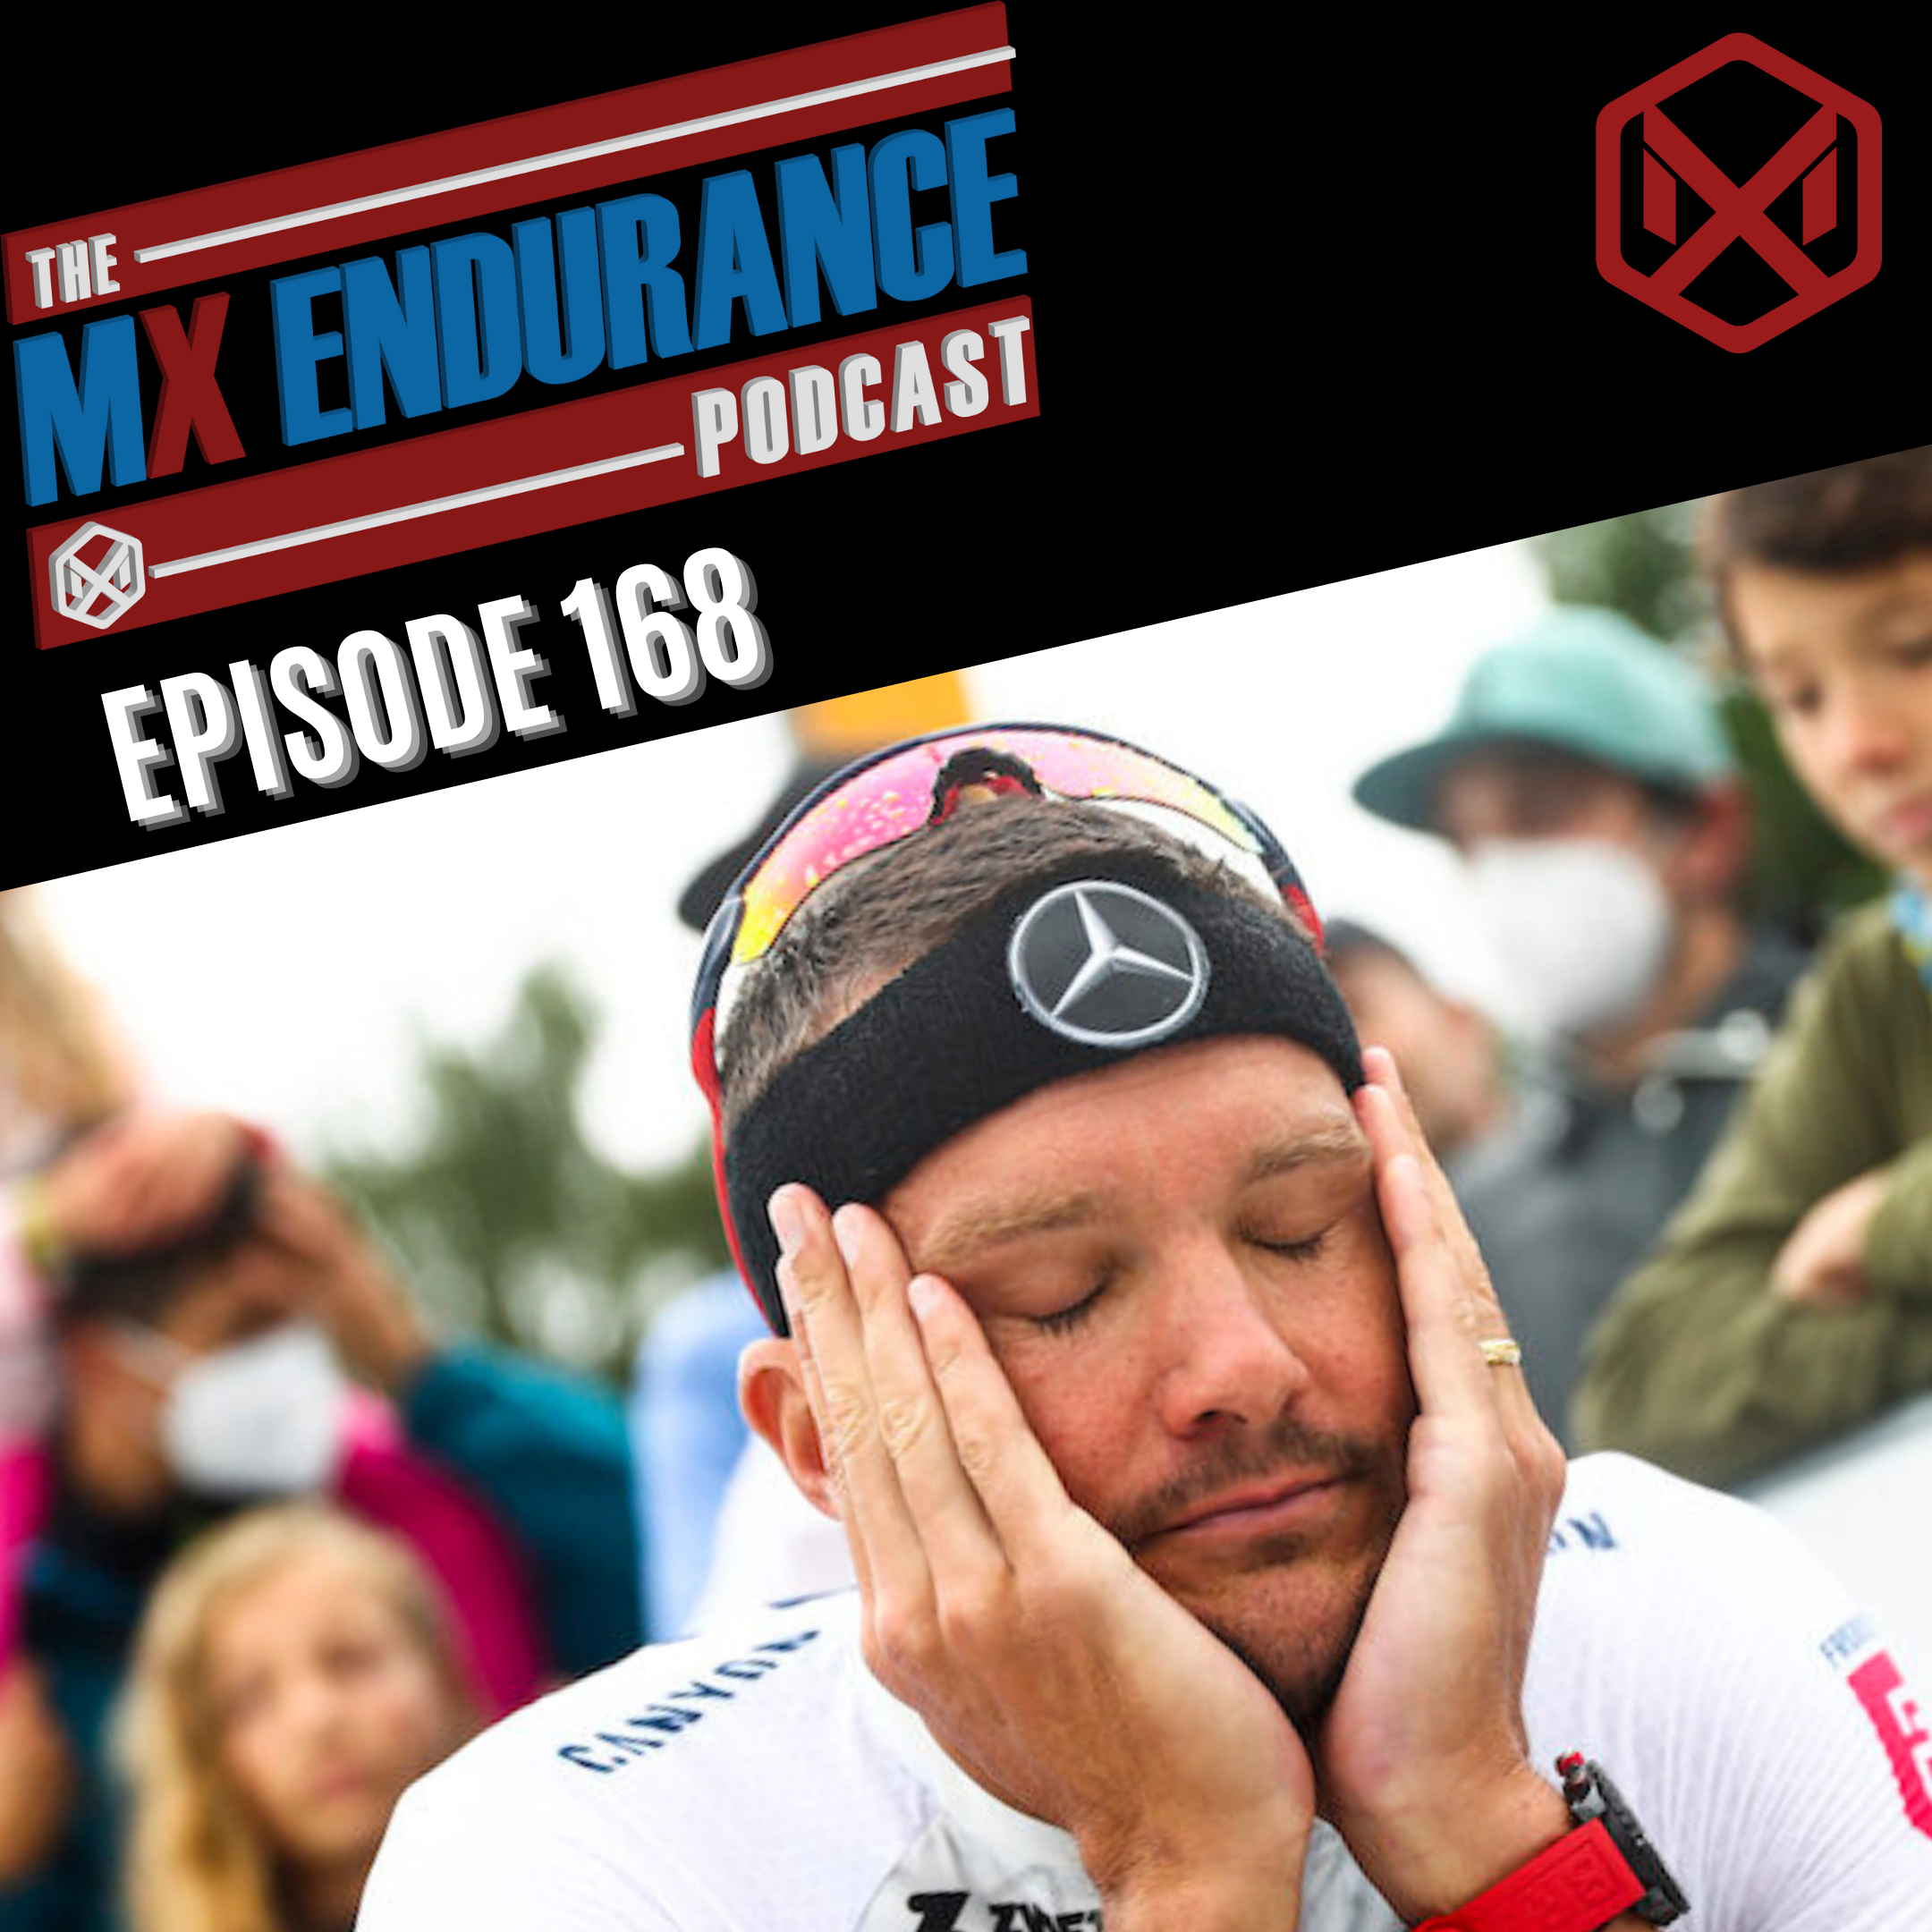 #168 - Jan Frodeno #2 in the World?